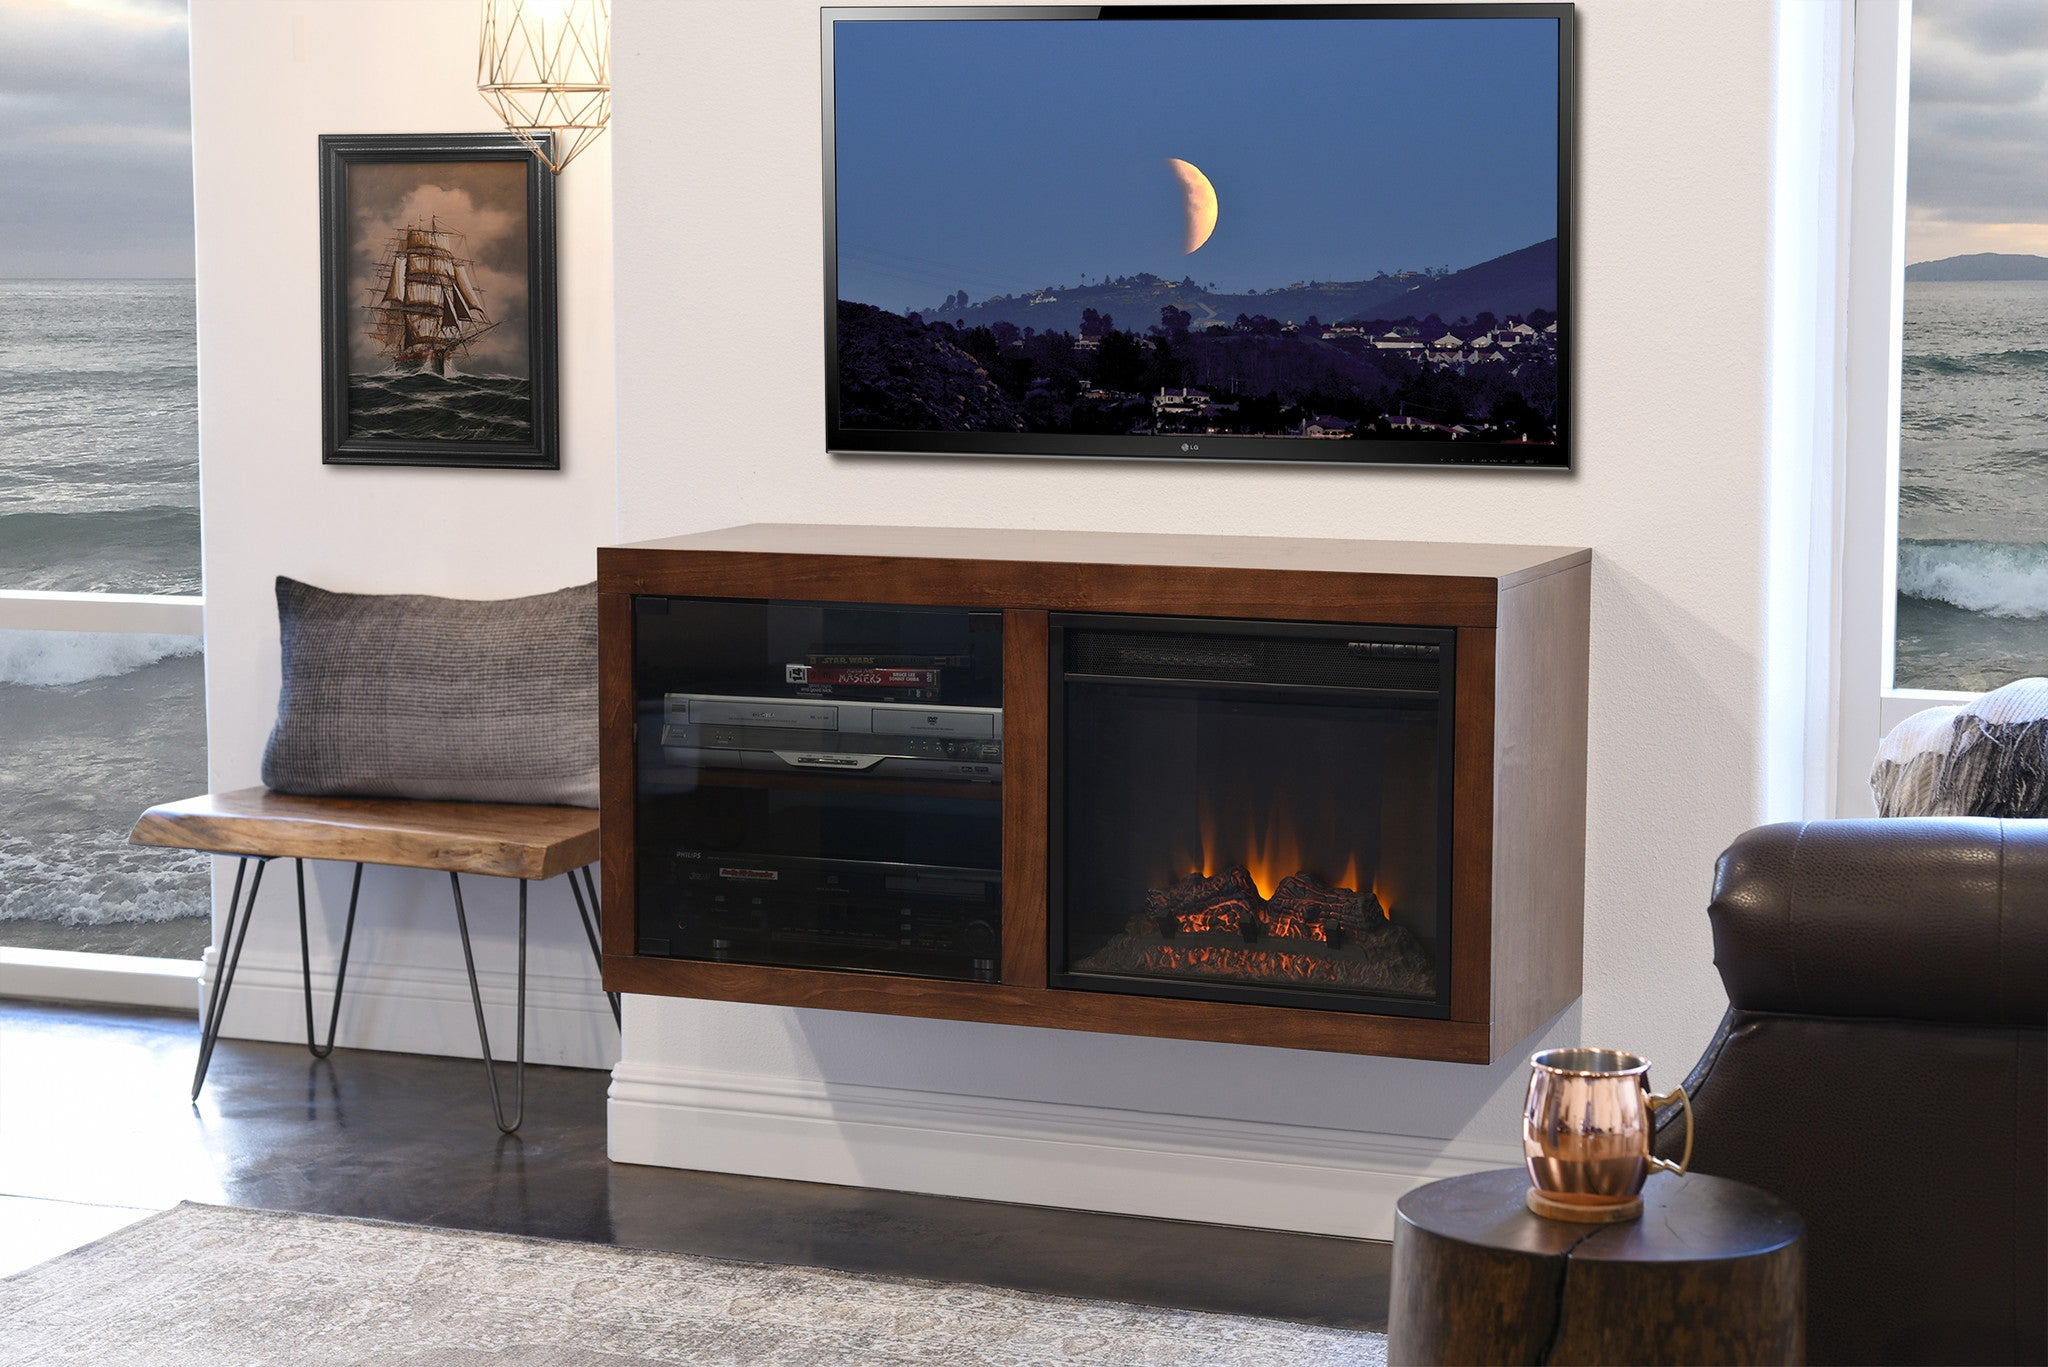 CLEARANCE! SAVE $100 OFF ORIGINAL PRICE OF $799!  HURRY! LIMITED STOCK! View Espresso Version Here Floating Electric Fireplace TV Stand The Eco Geo is a unique eco-friendly modular entertainment console which is handcrafted of solid Poplar and genuine M